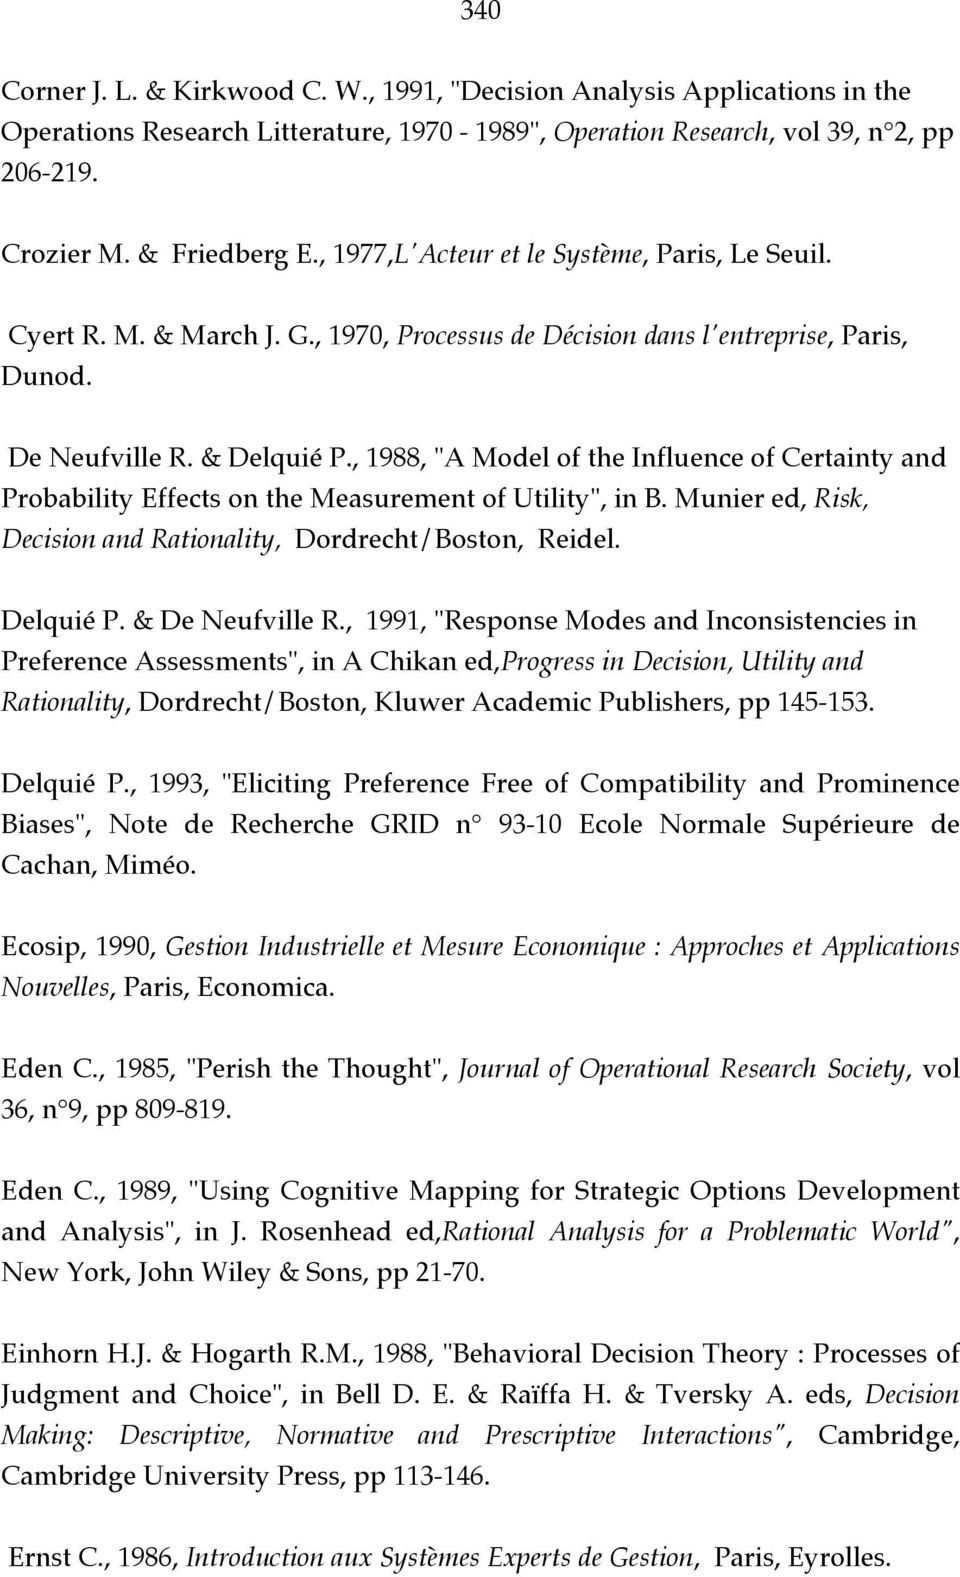 ", 1988, ""A Model of the Influence of Certainty and Probability Effects on the Measurement of Utility"", in B. Munier ed, Risk, Decision and Rationality, Dordrecht/Boston, Reidel. Delquié P."